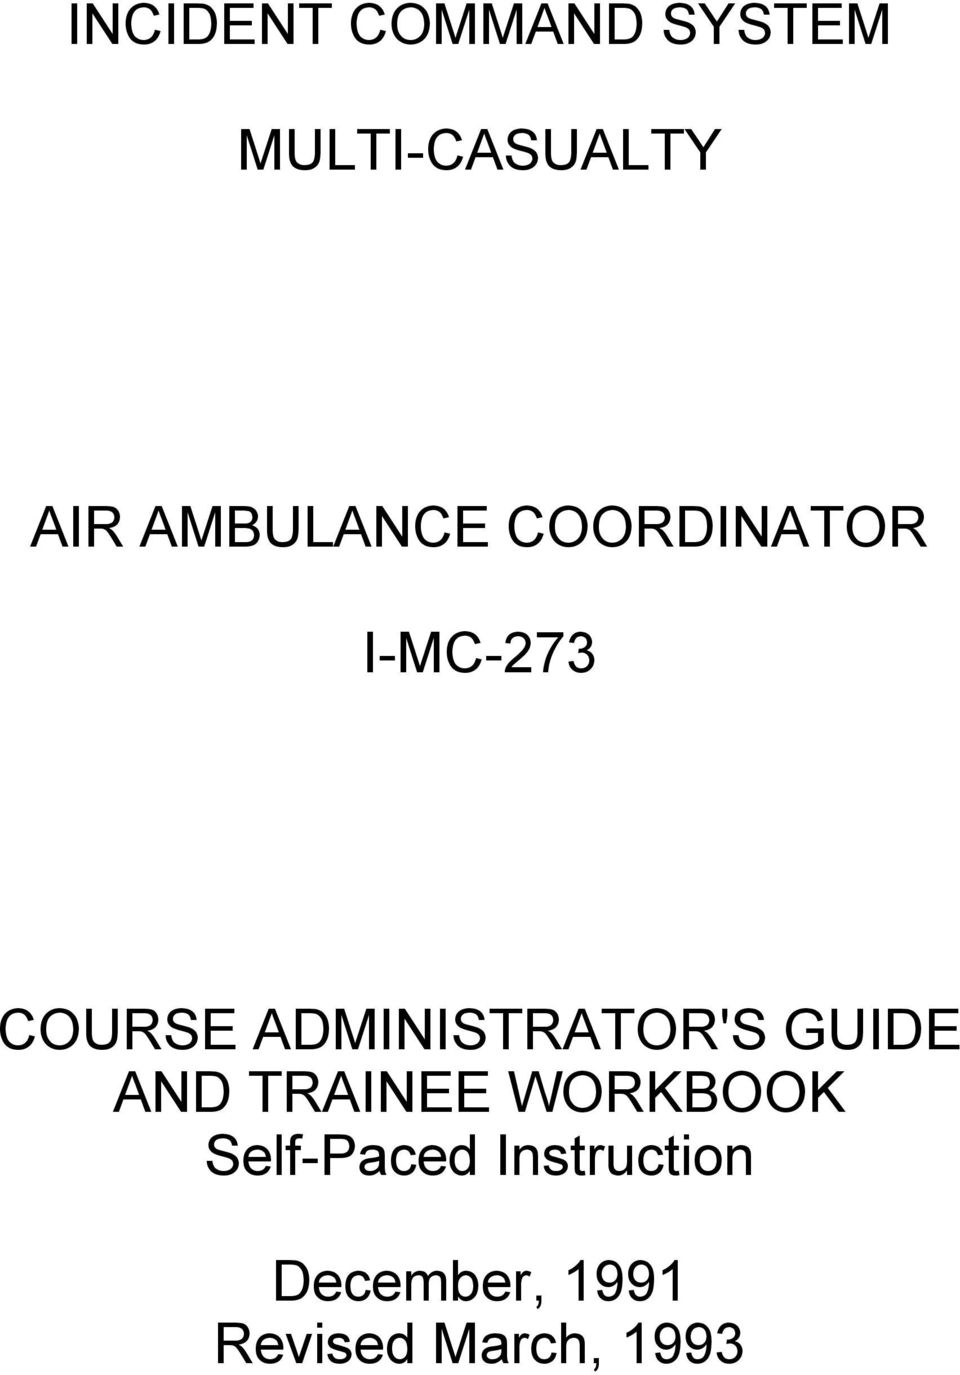 ADMINISTRATOR'S GUIDE AND TRAINEE WORKBOOK